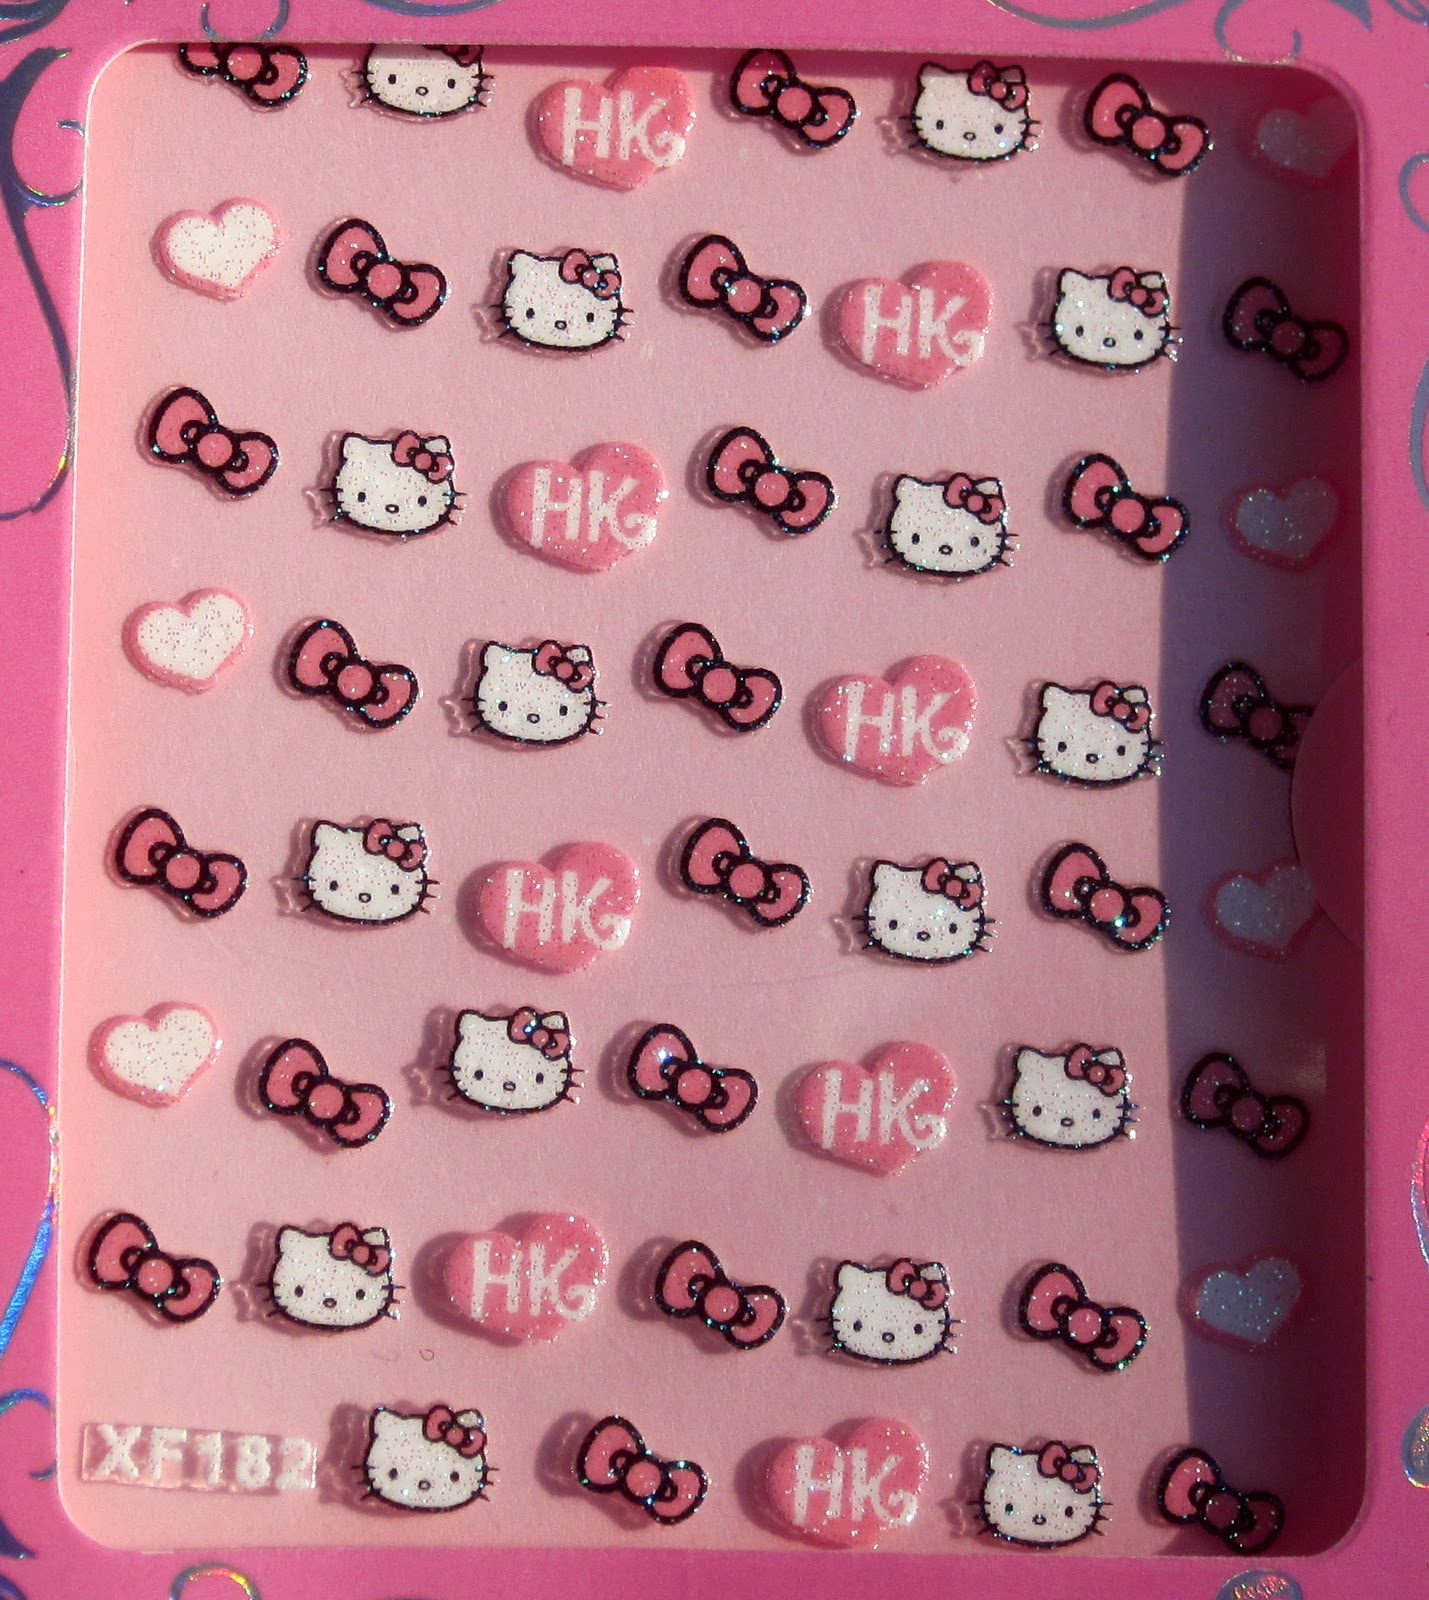 Painted Lady Fingers Born Pretty Store Hello Kitty Nail Art Decal